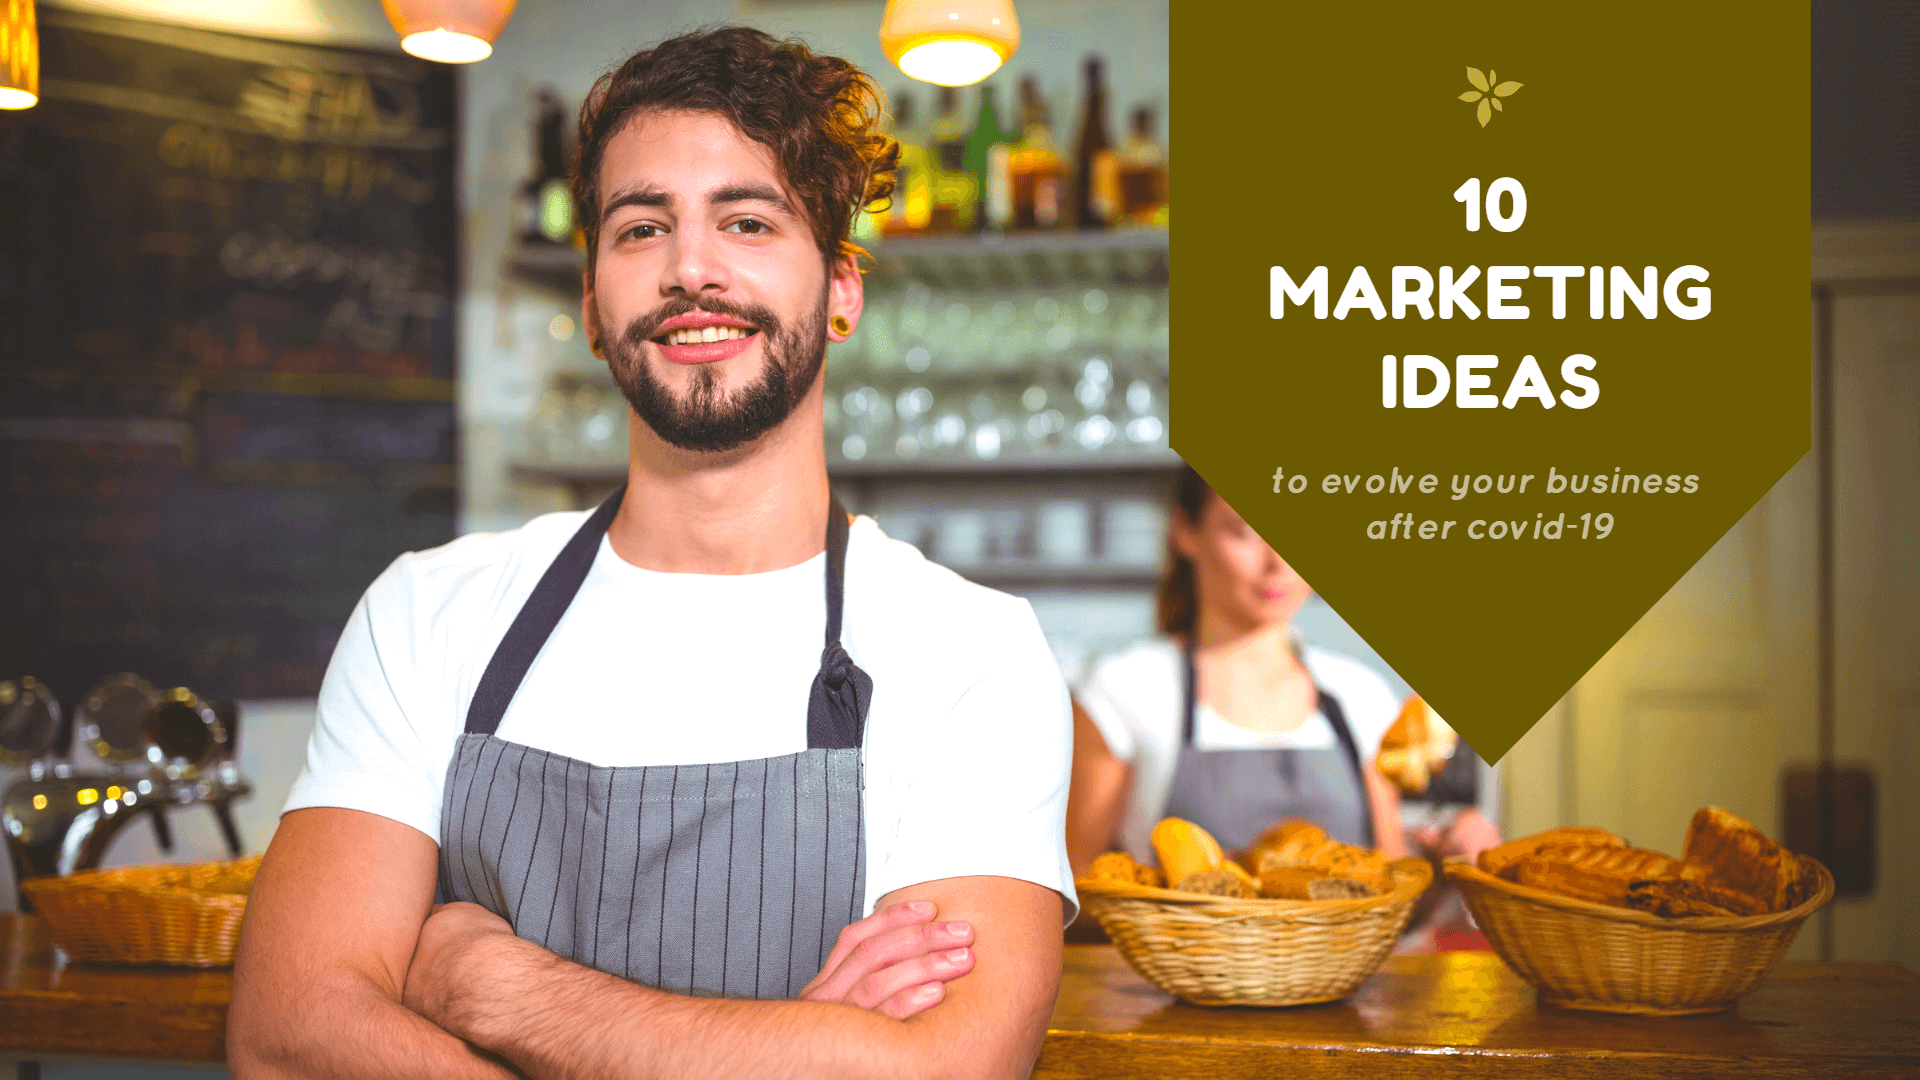 Marketing ideas for restaurant business